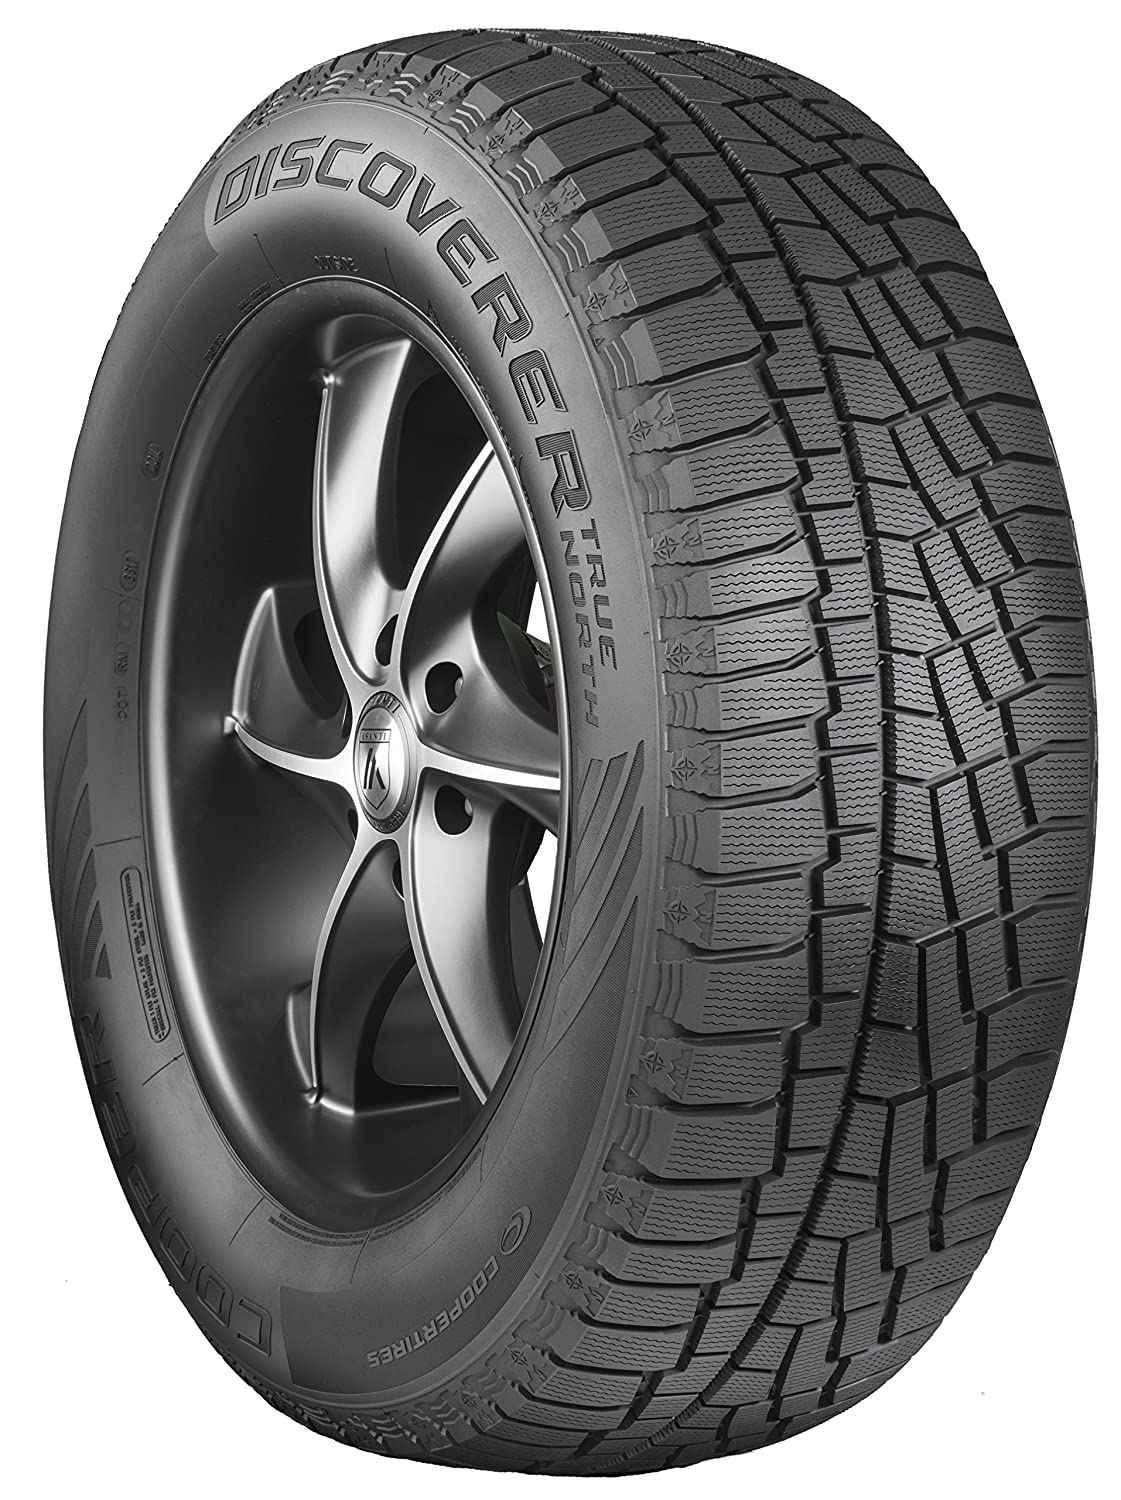 Cooper Discoverer True North Studless-Winter Radial Tire - 225/65R17 102T 90000029748